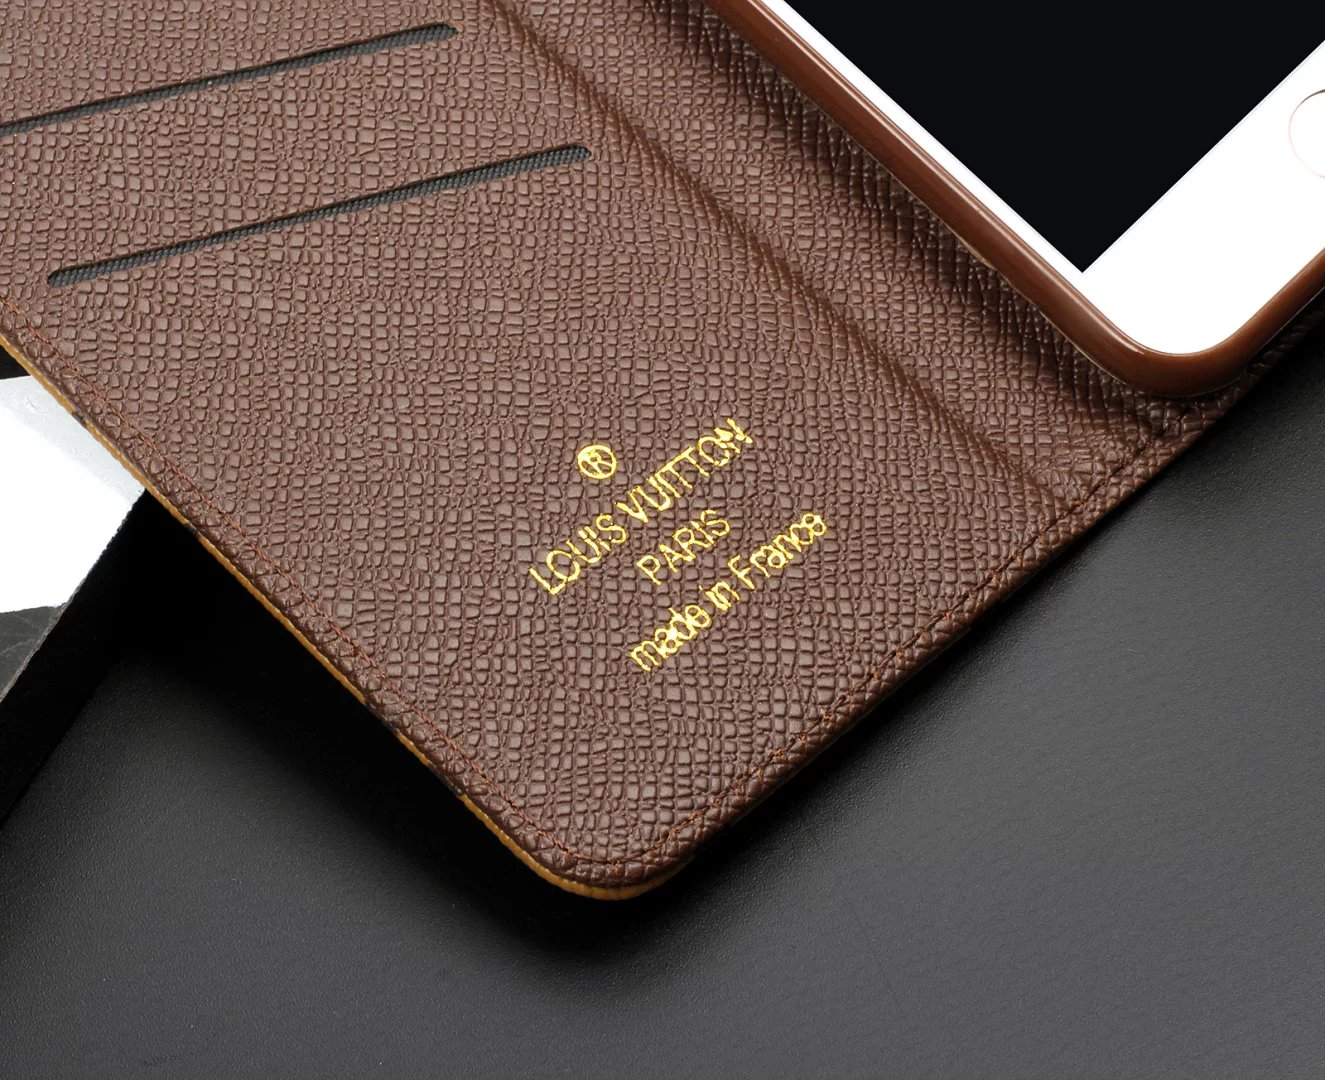 handyhülle iphone iphone case foto Louis Vuitton iphone7 hülle hüllen 7lbst gestalten iphone 7 handy ca7 metall hülle iphone 7 etui iphone 7 leder marken iphone hüllen iphone 3 hülle